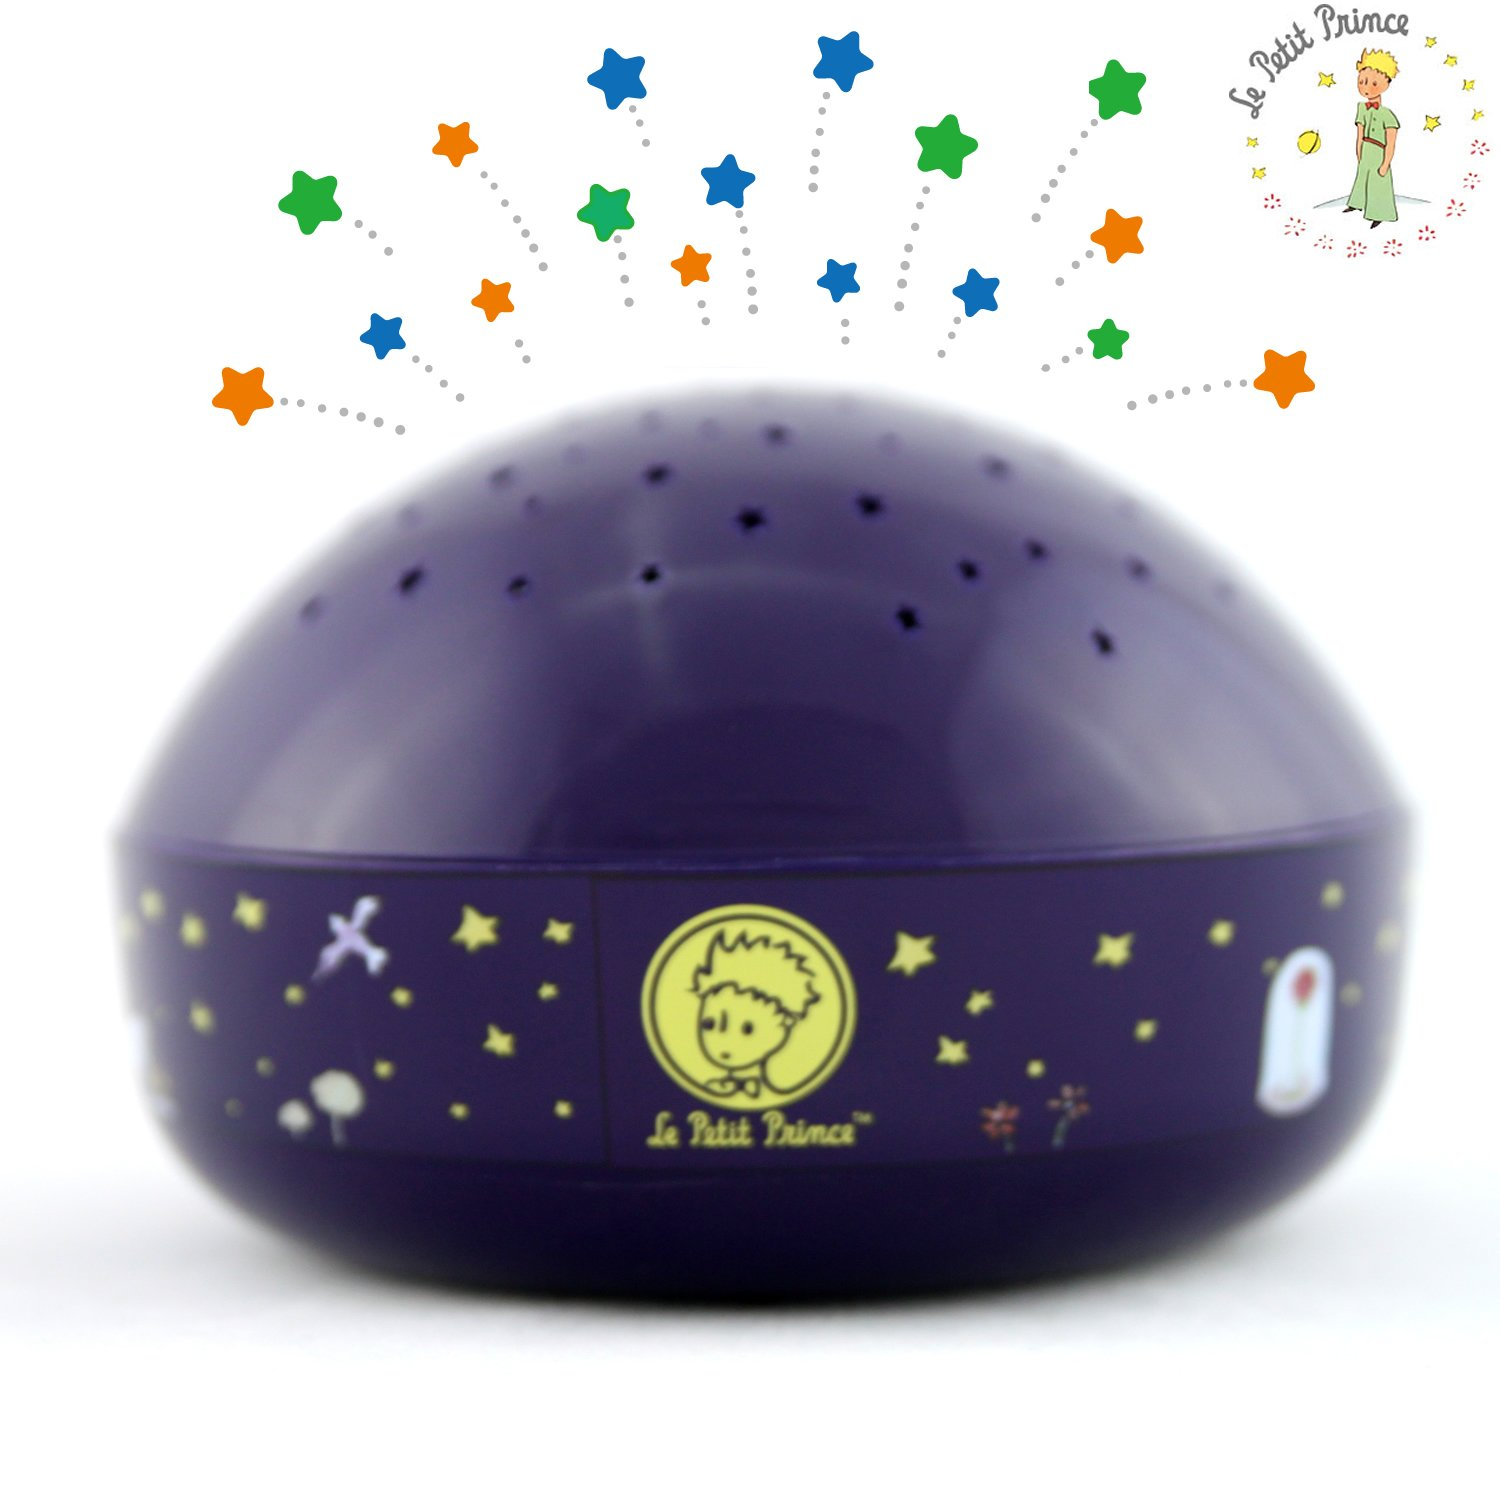 Le Petit PrinceTouch Active, Easy Clean Twilight Constellation Galaxy Round Projector Night Light by Lumitusi STR88YYB